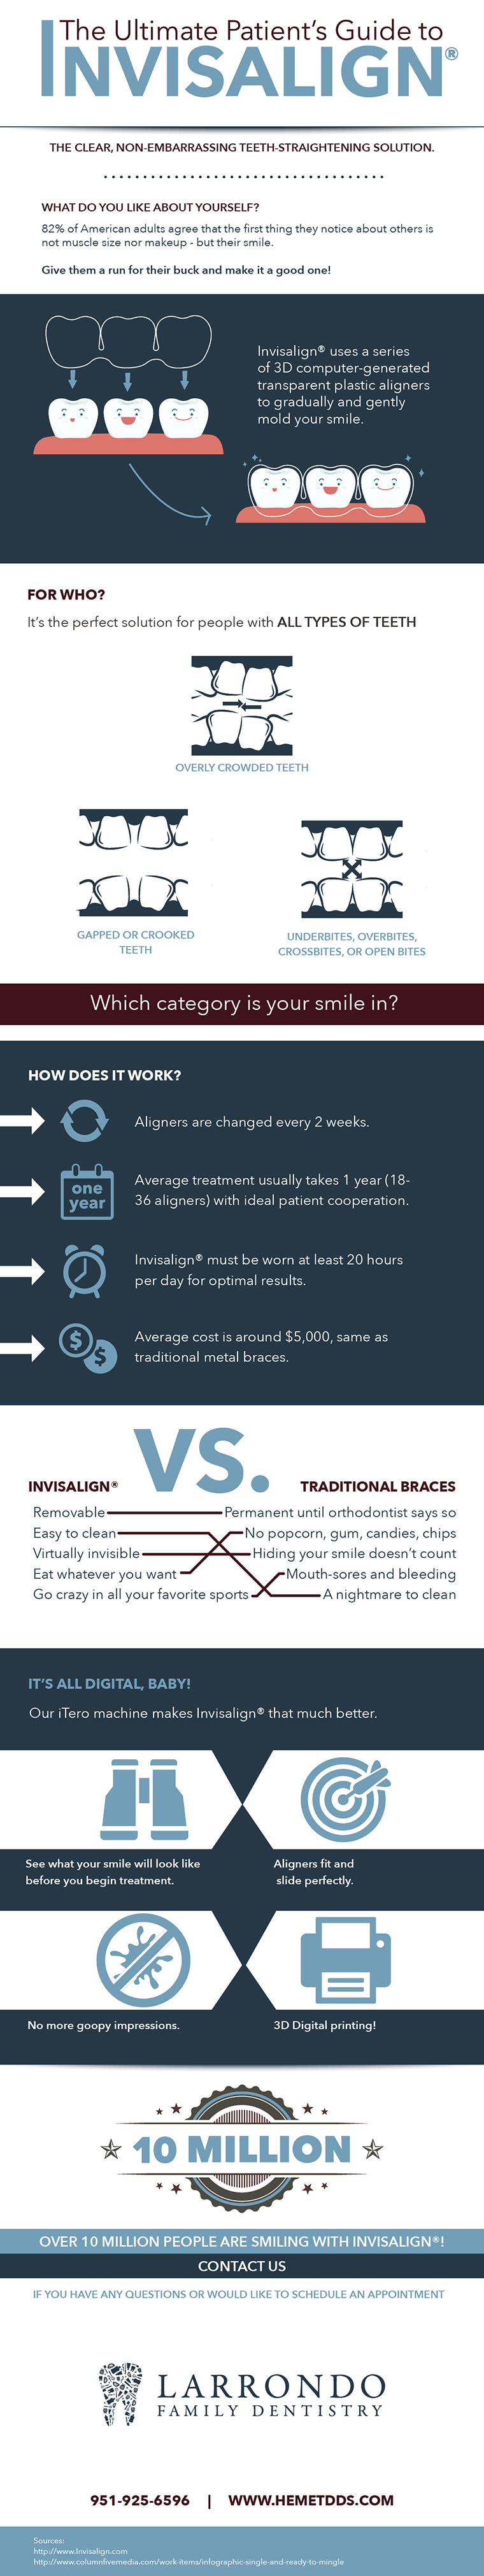 Infographic about Invisalign clear aligners